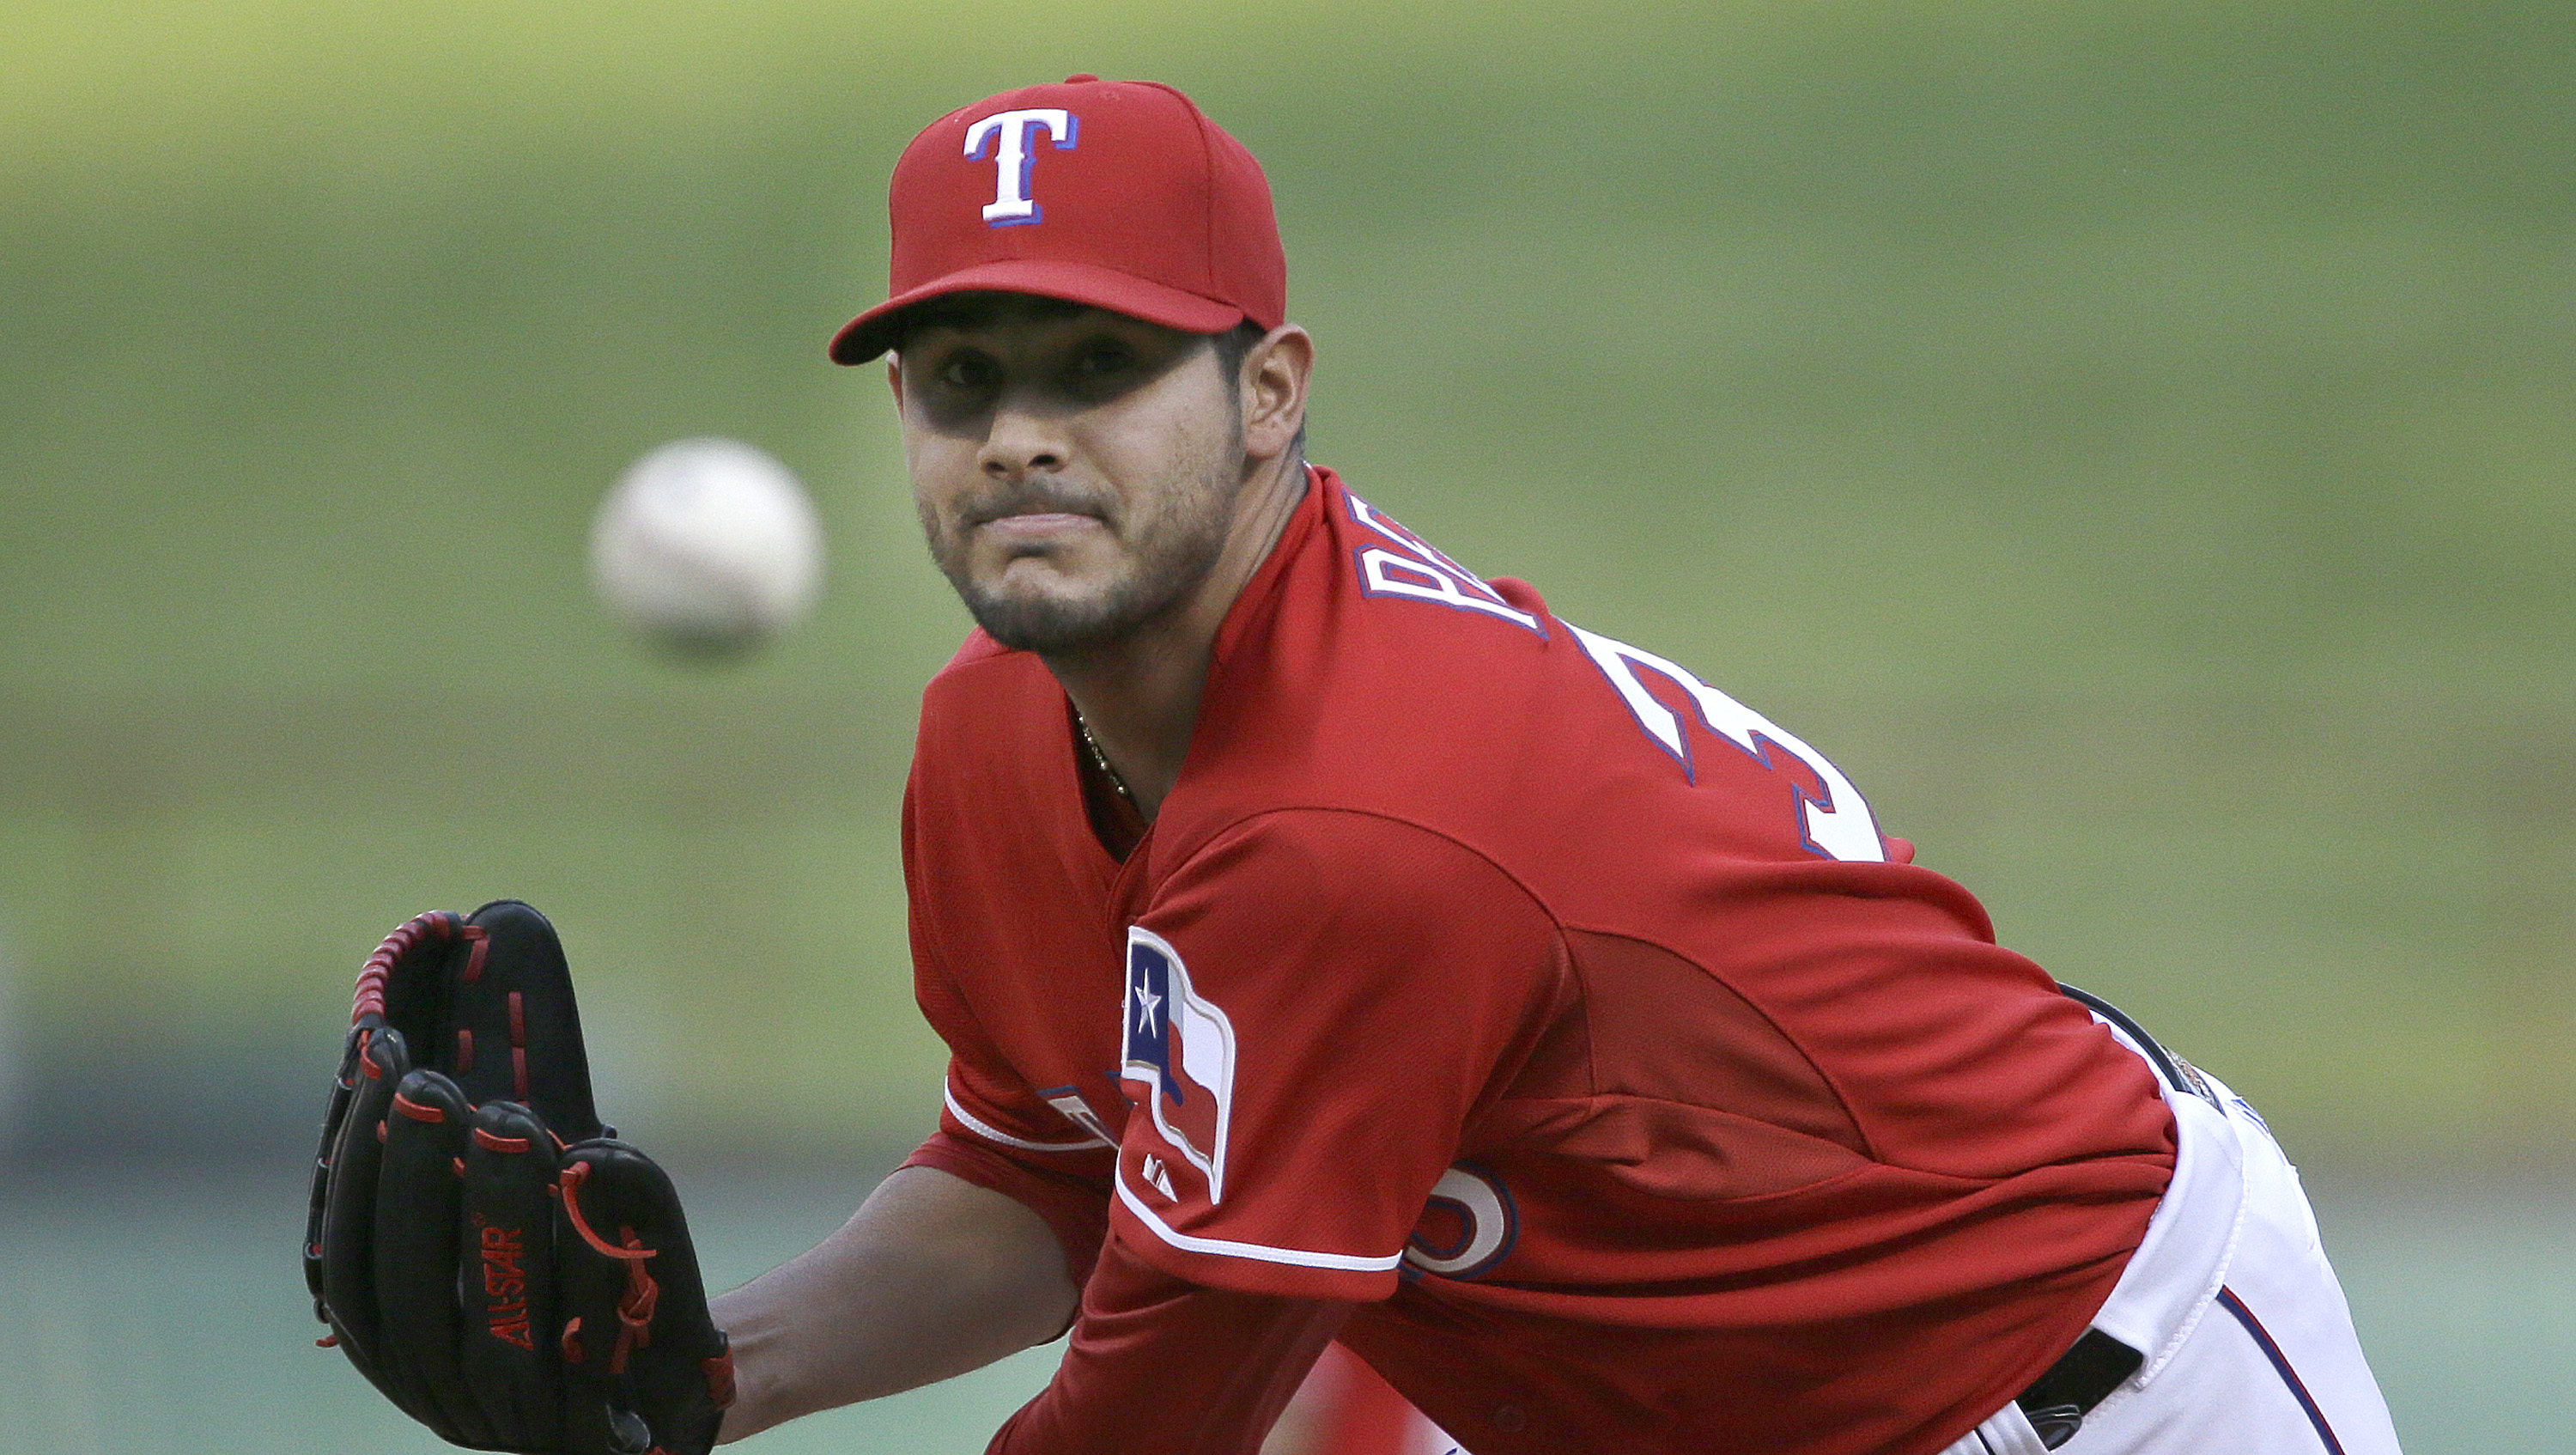 Color game ray otero - Texas Rangers Rangers Left Hander Martin Perez Knows He Needs To Be Better With The Lead Sportsday